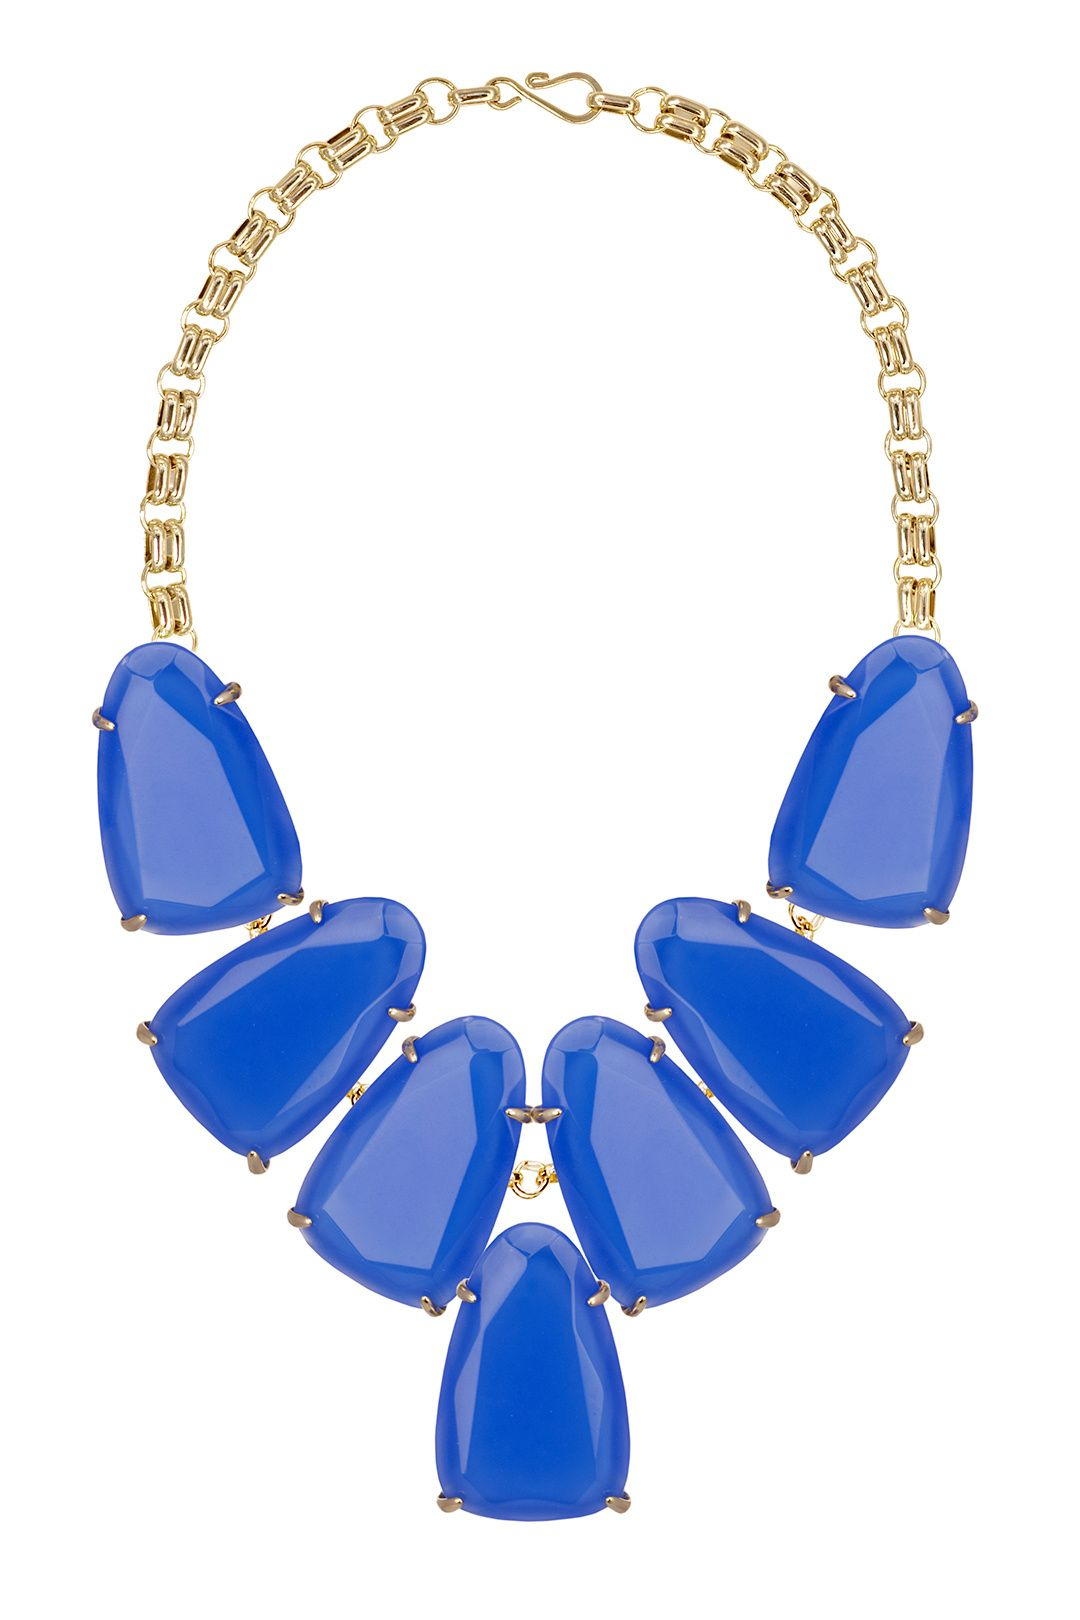 Kendra scott periwinkle harlow necklace things i like pinterest